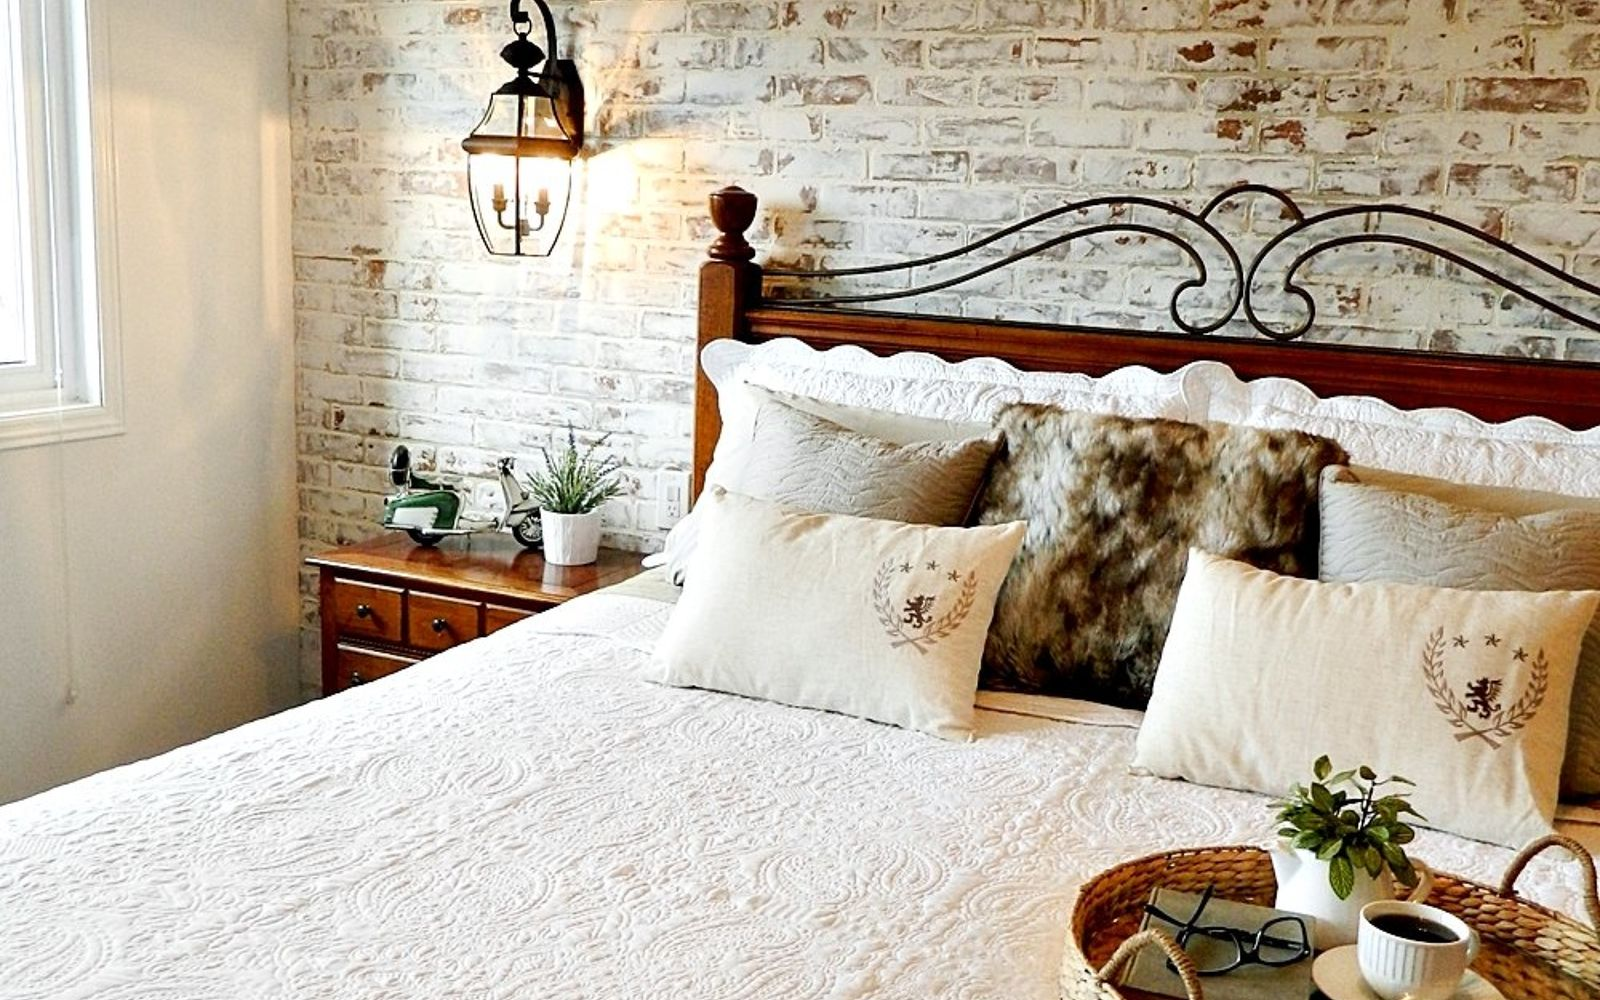 s 15 makeovers that will make you rethink your bedroom, Design A Bedroom For Royalty With Bricks